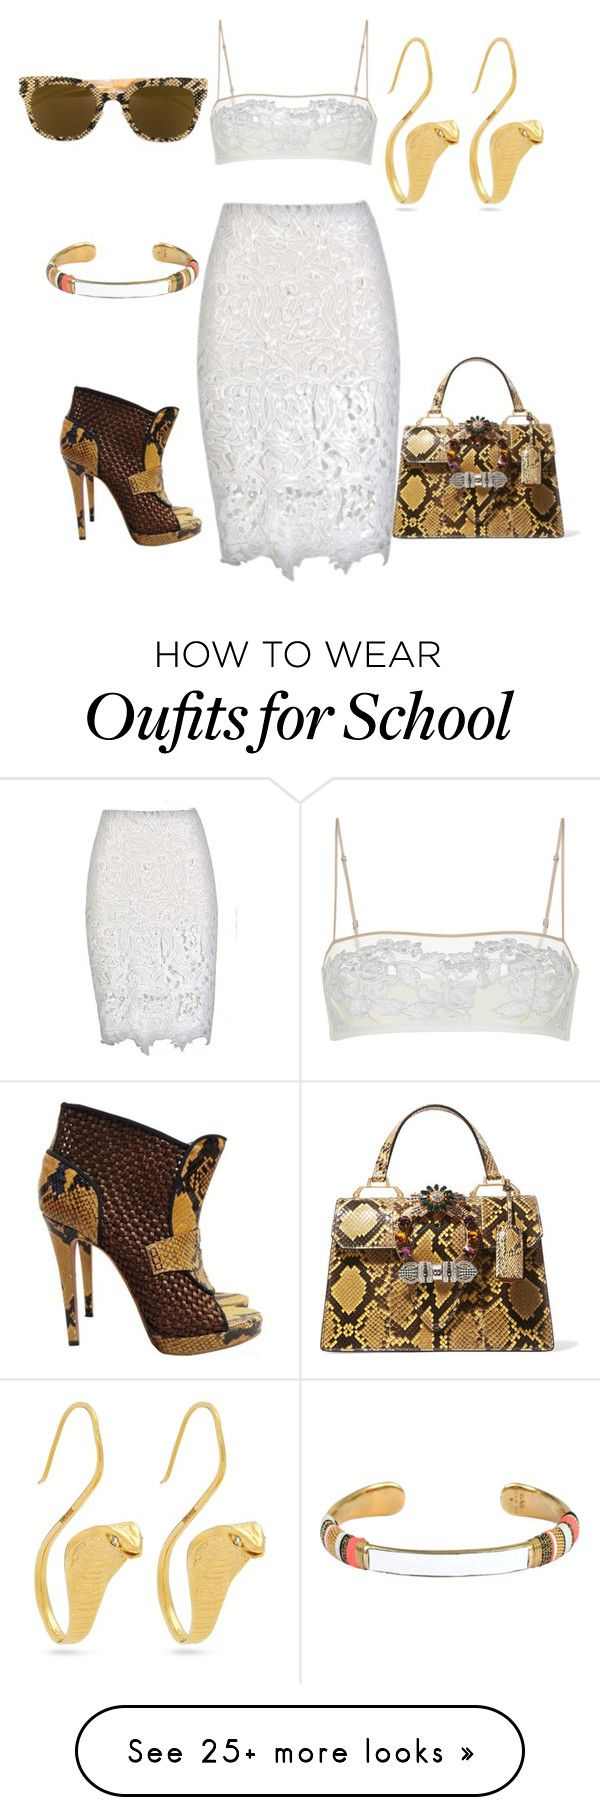 """Untitled #176"" by esha2232 on Polyvore featuring Gas Bijoux, Viktor & Rolf, Miu Miu and Mykita"